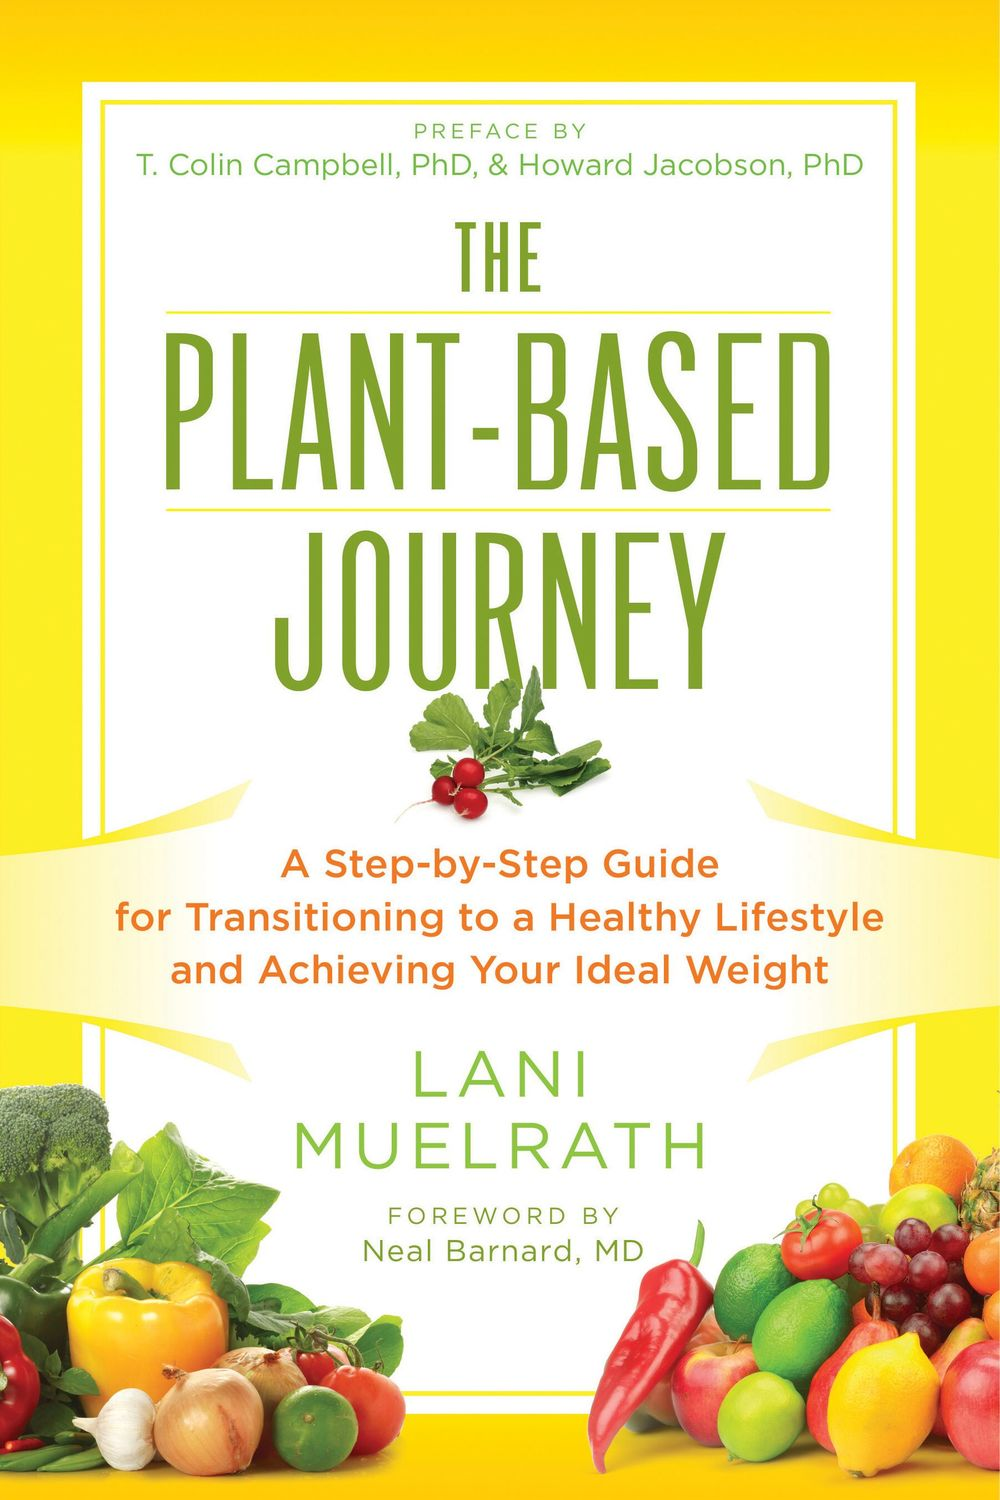 The Plant Based Journey, Lani Muelrath